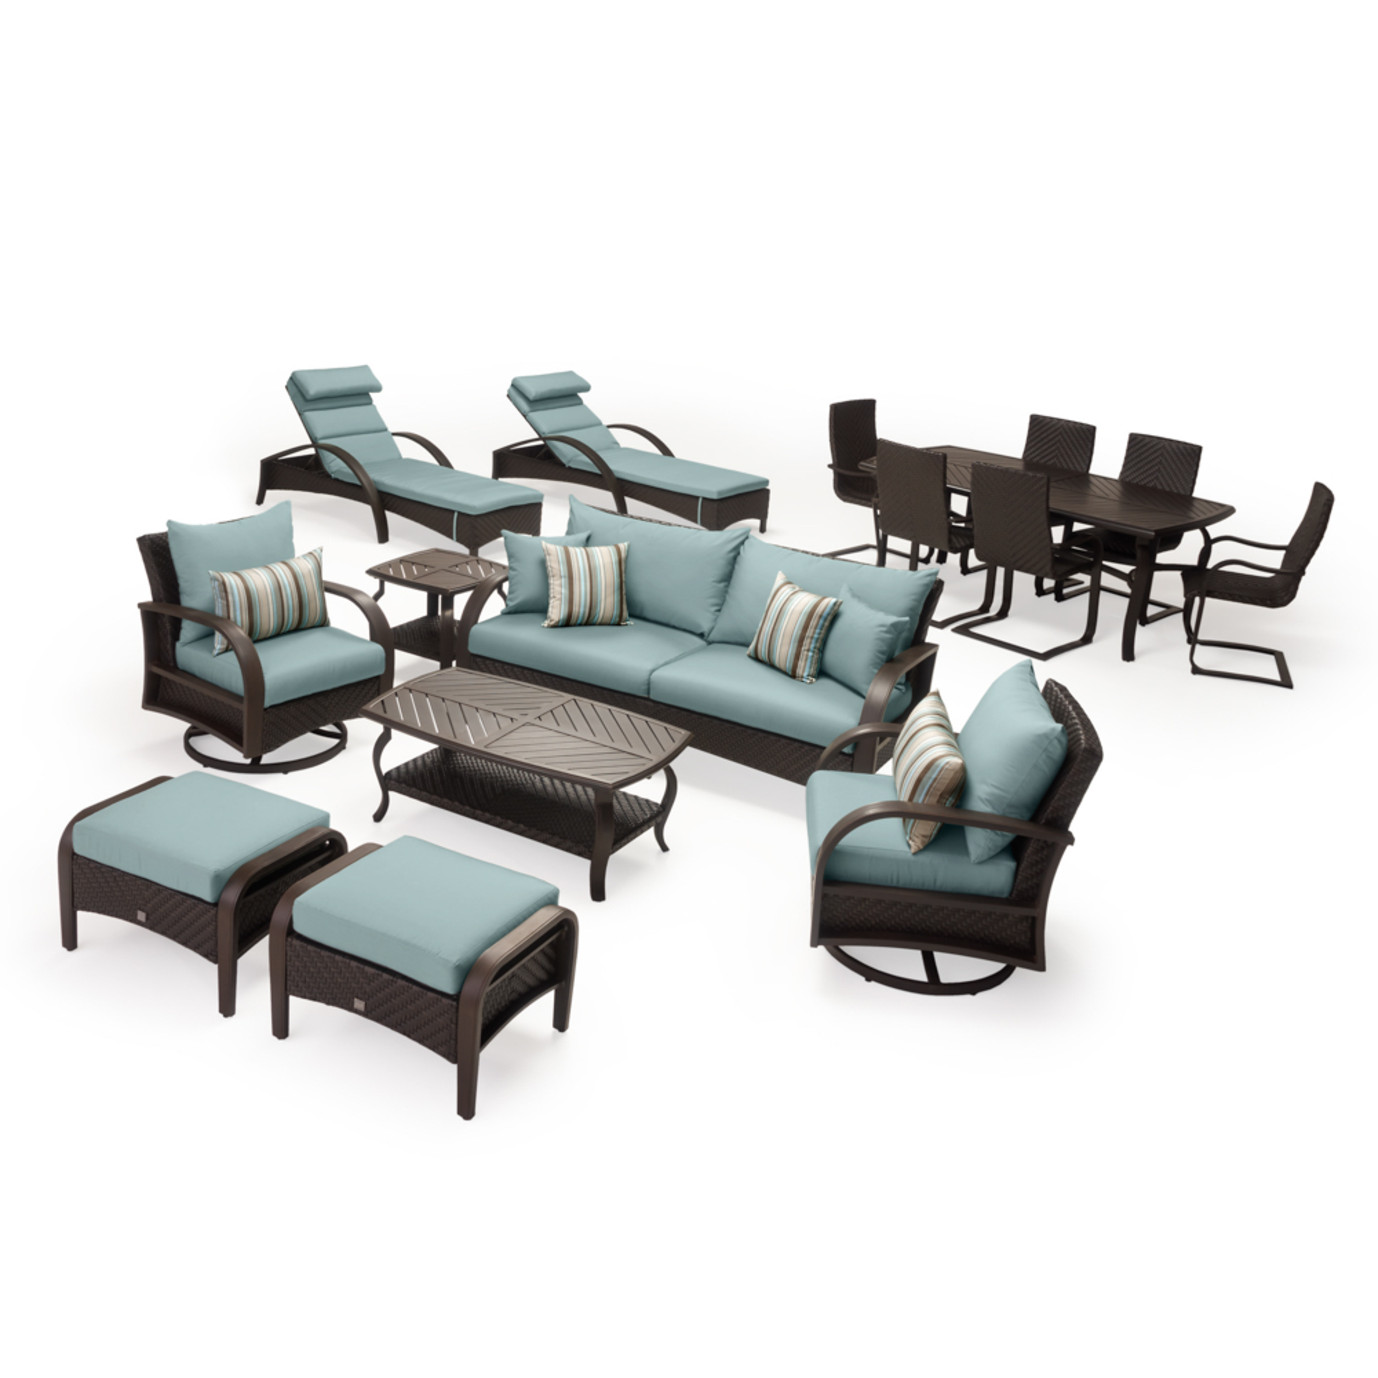 Barcelo™ 16 Piece Estate Collection - Bliss Blue